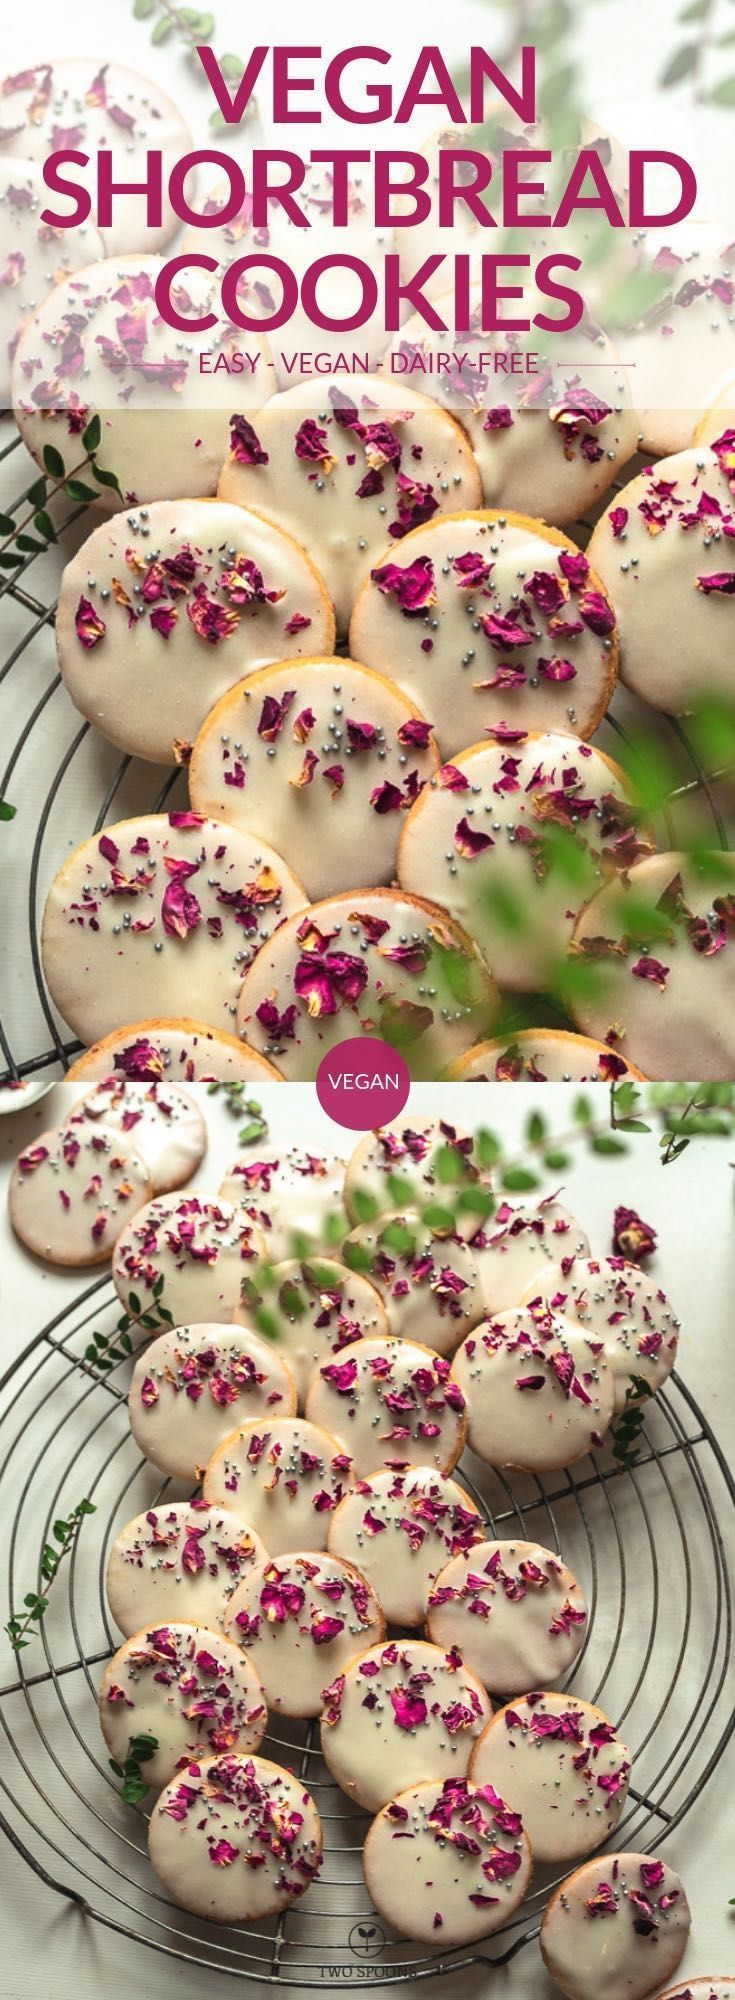 TWO SPOONS | Vegan Shortbread Cookies